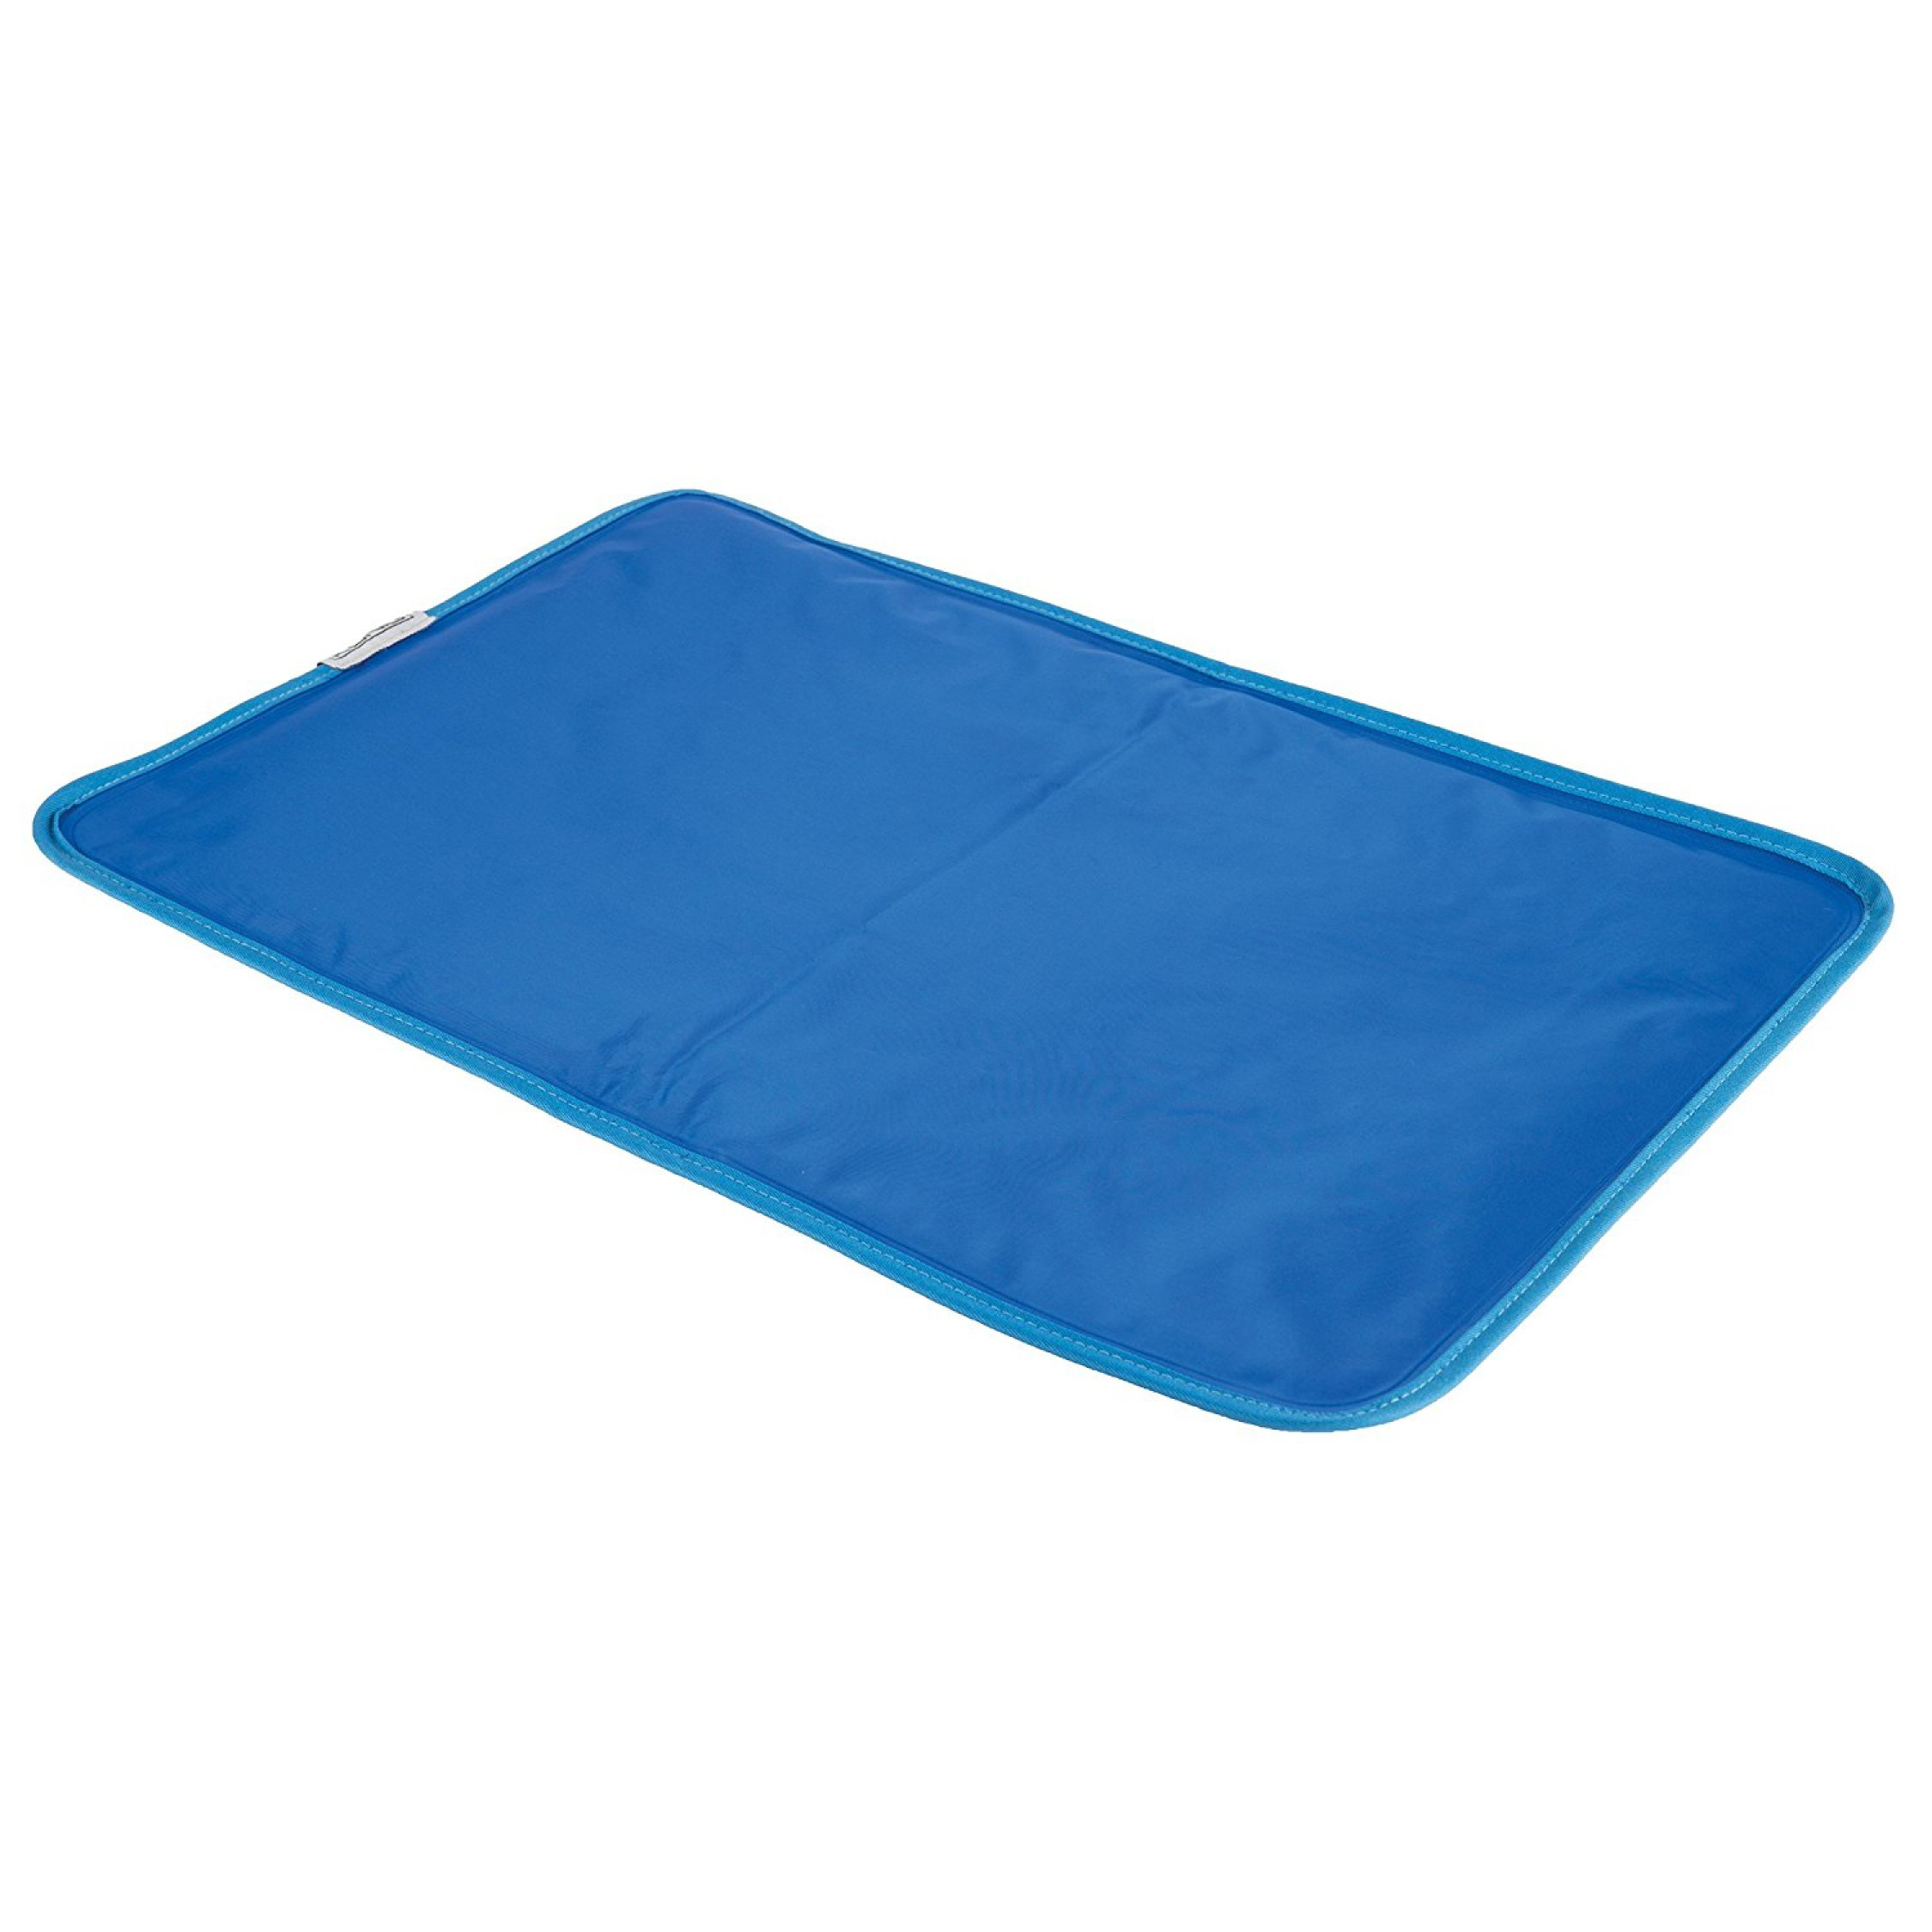 laptop mat bed pillow cooling sofa cushion yoga gel pad cool cold magic itm pet